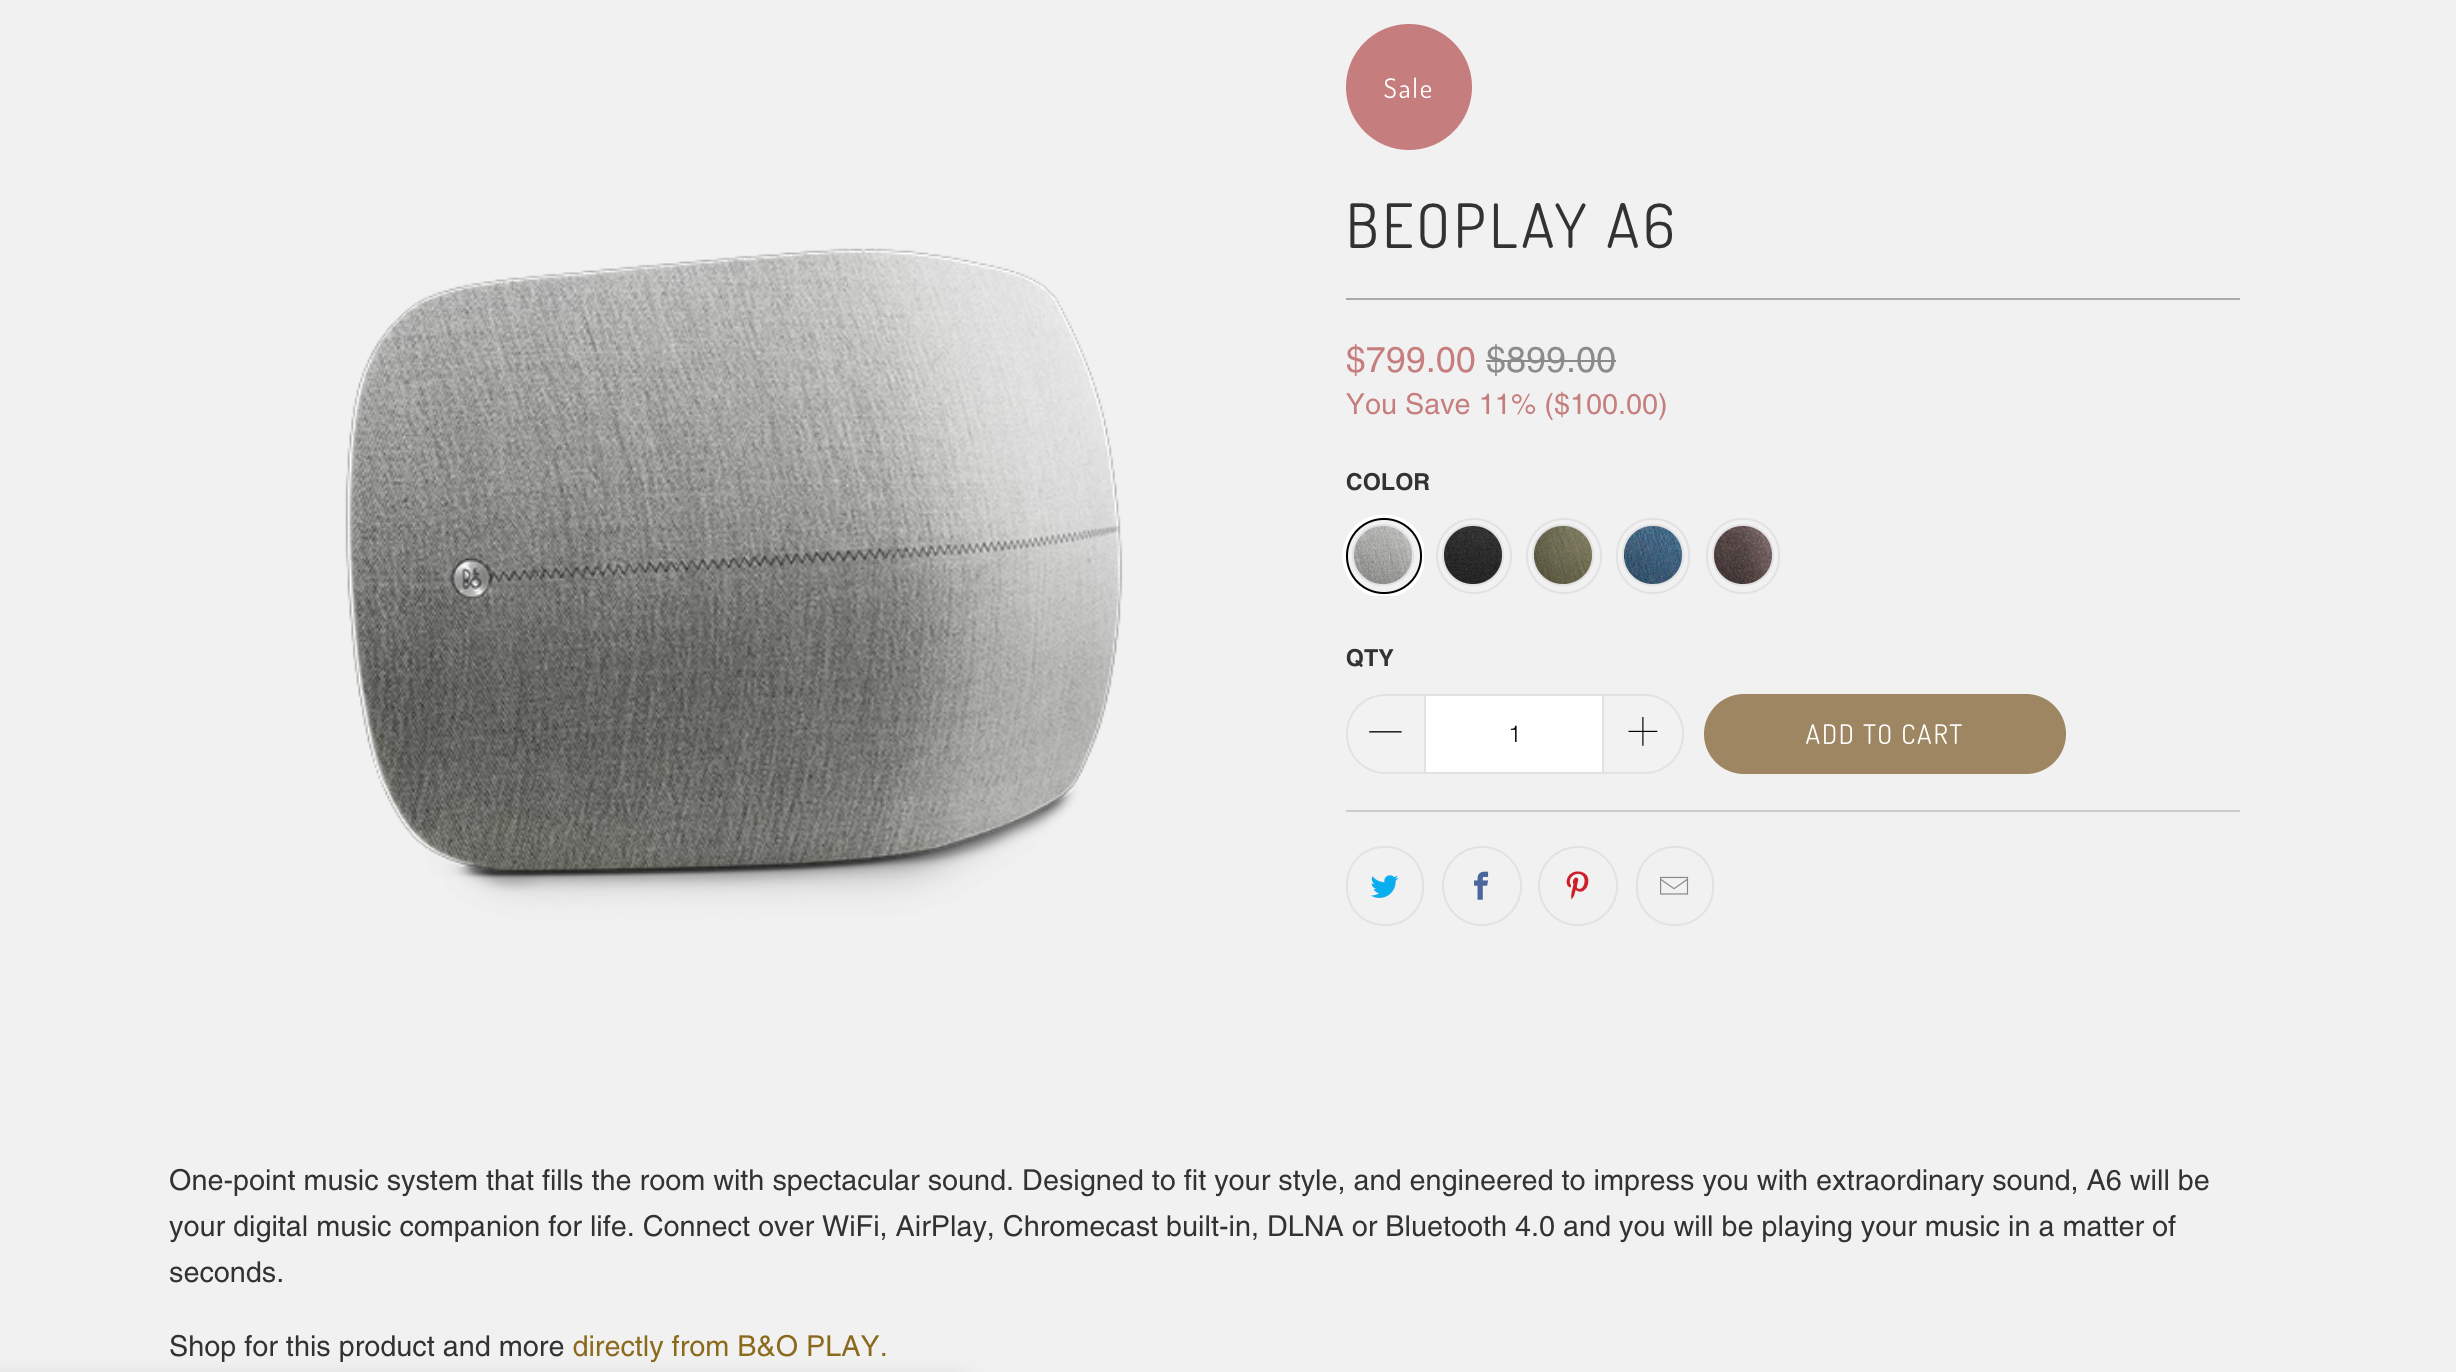 turbo-product-description-bottom.png